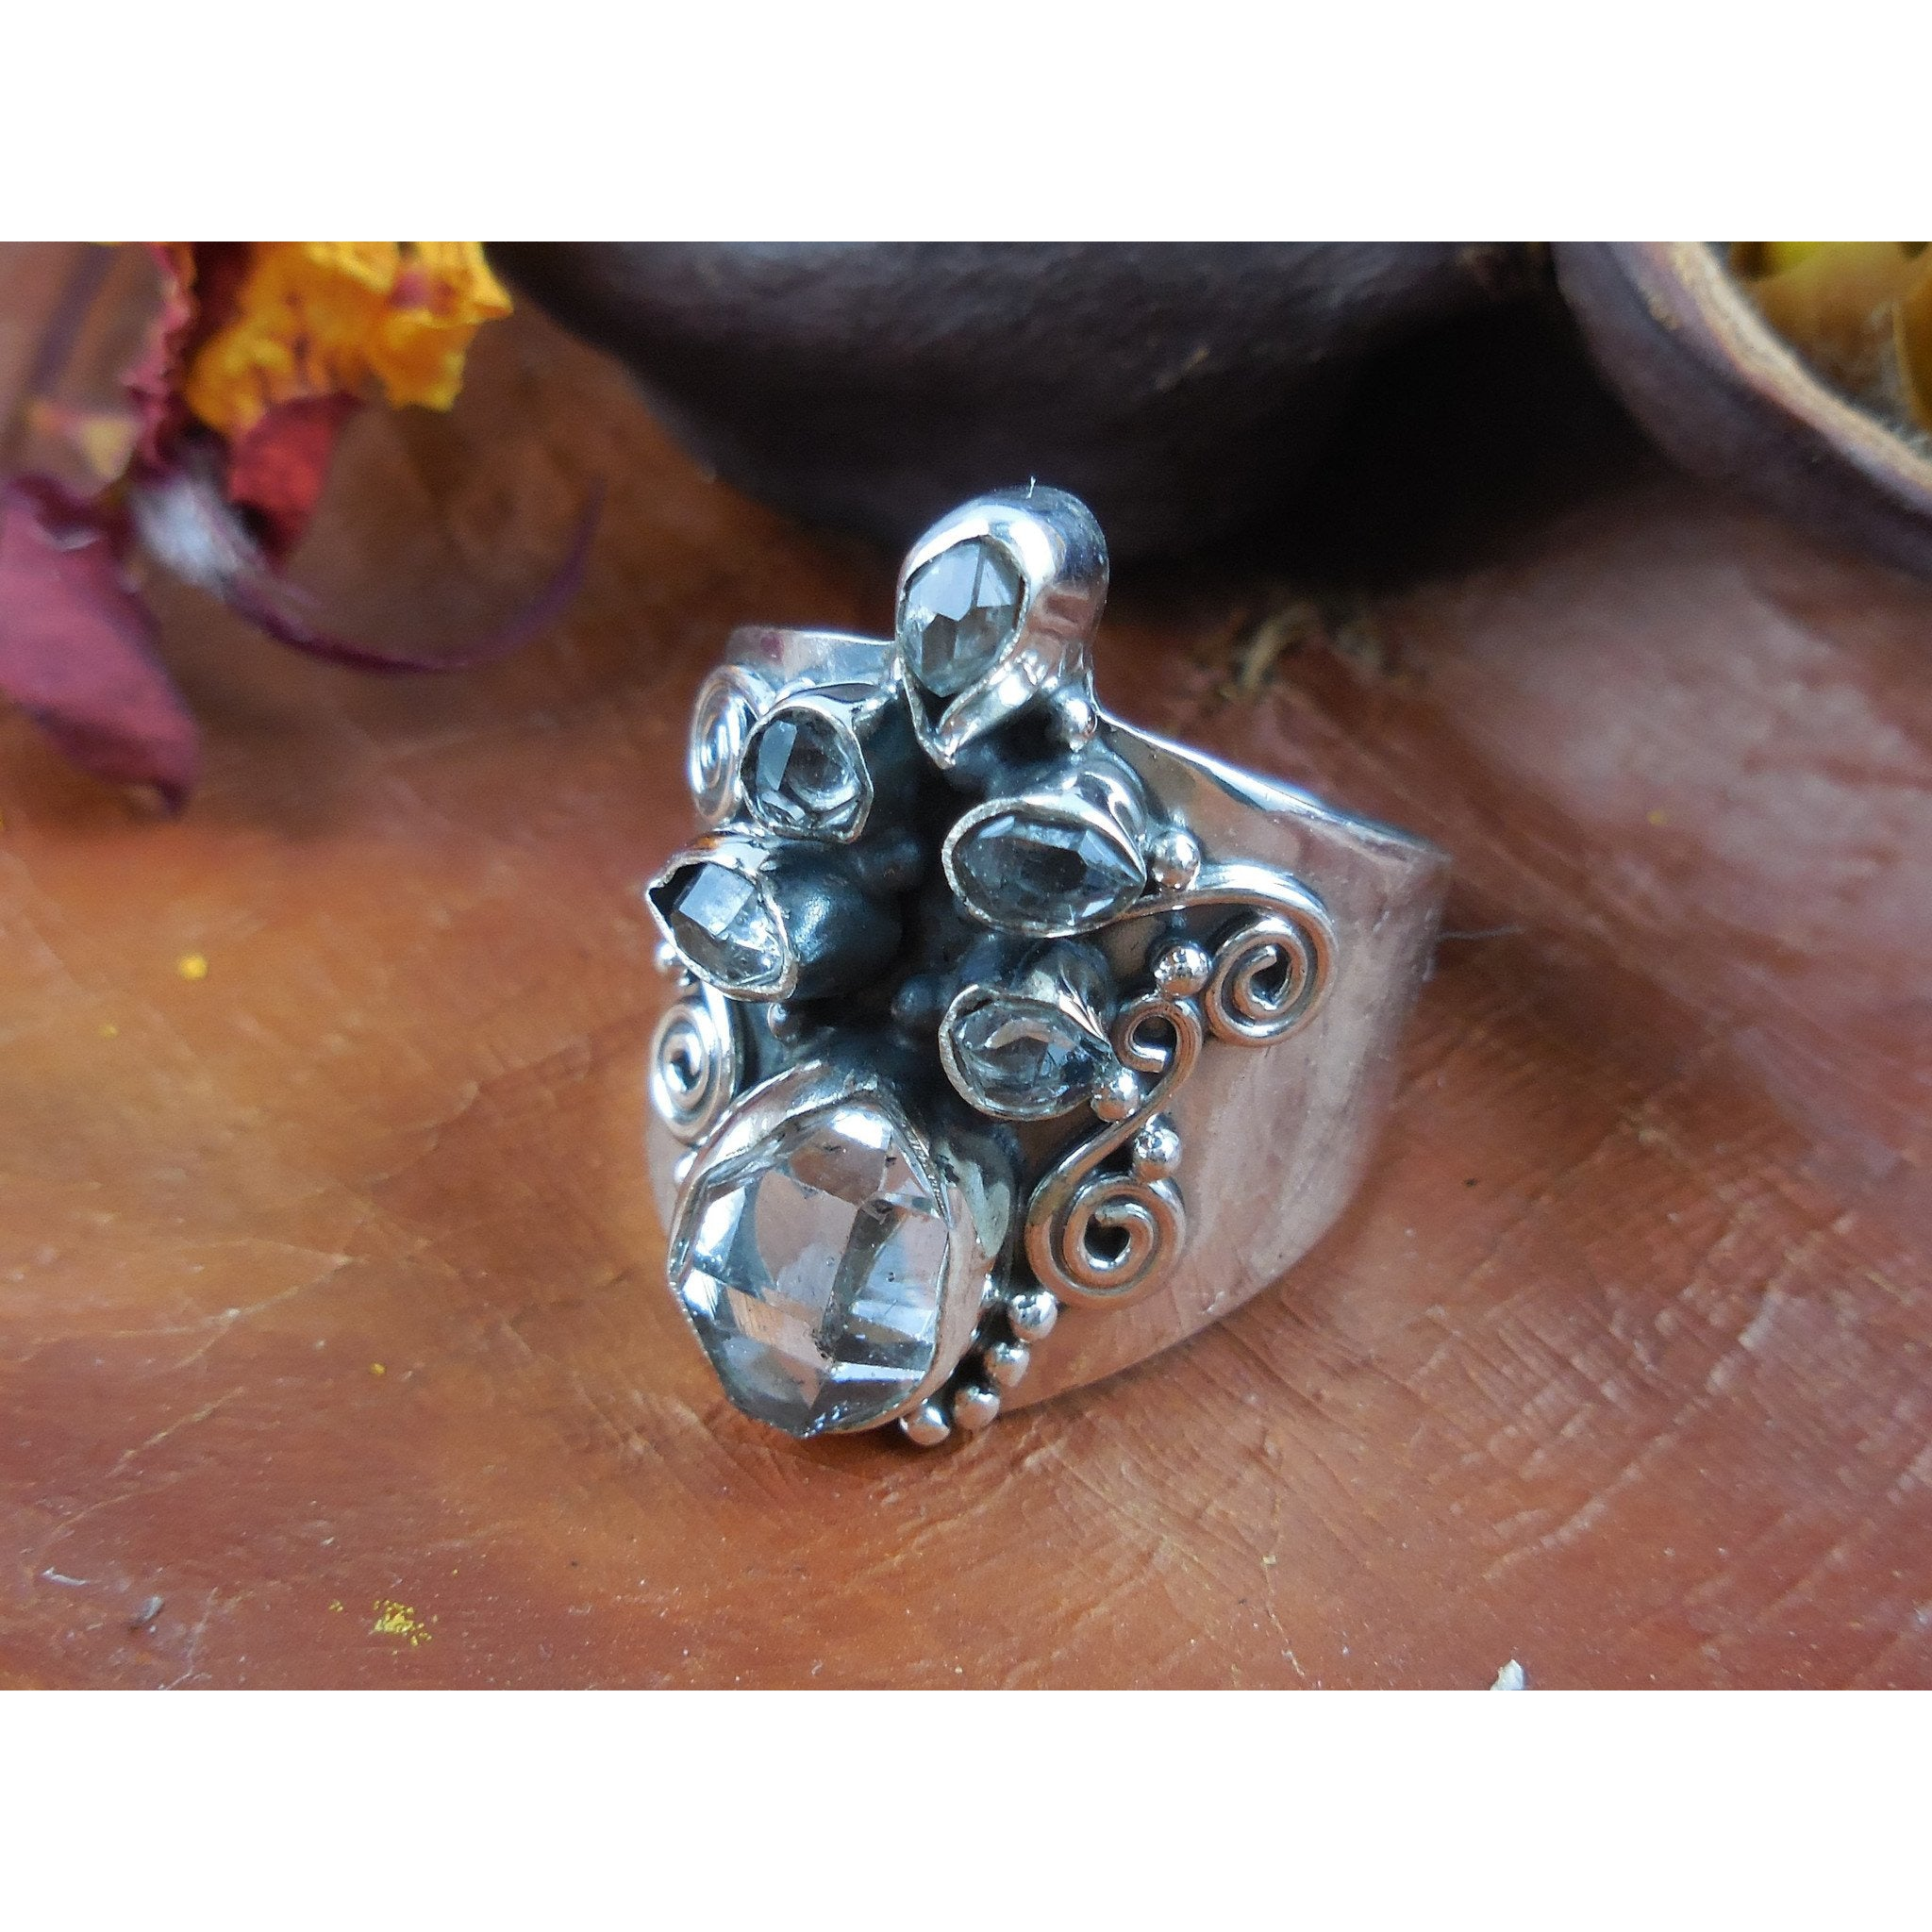 Herkimer Diamond (Quartz) Sterling Silver Ring - Size 7.25